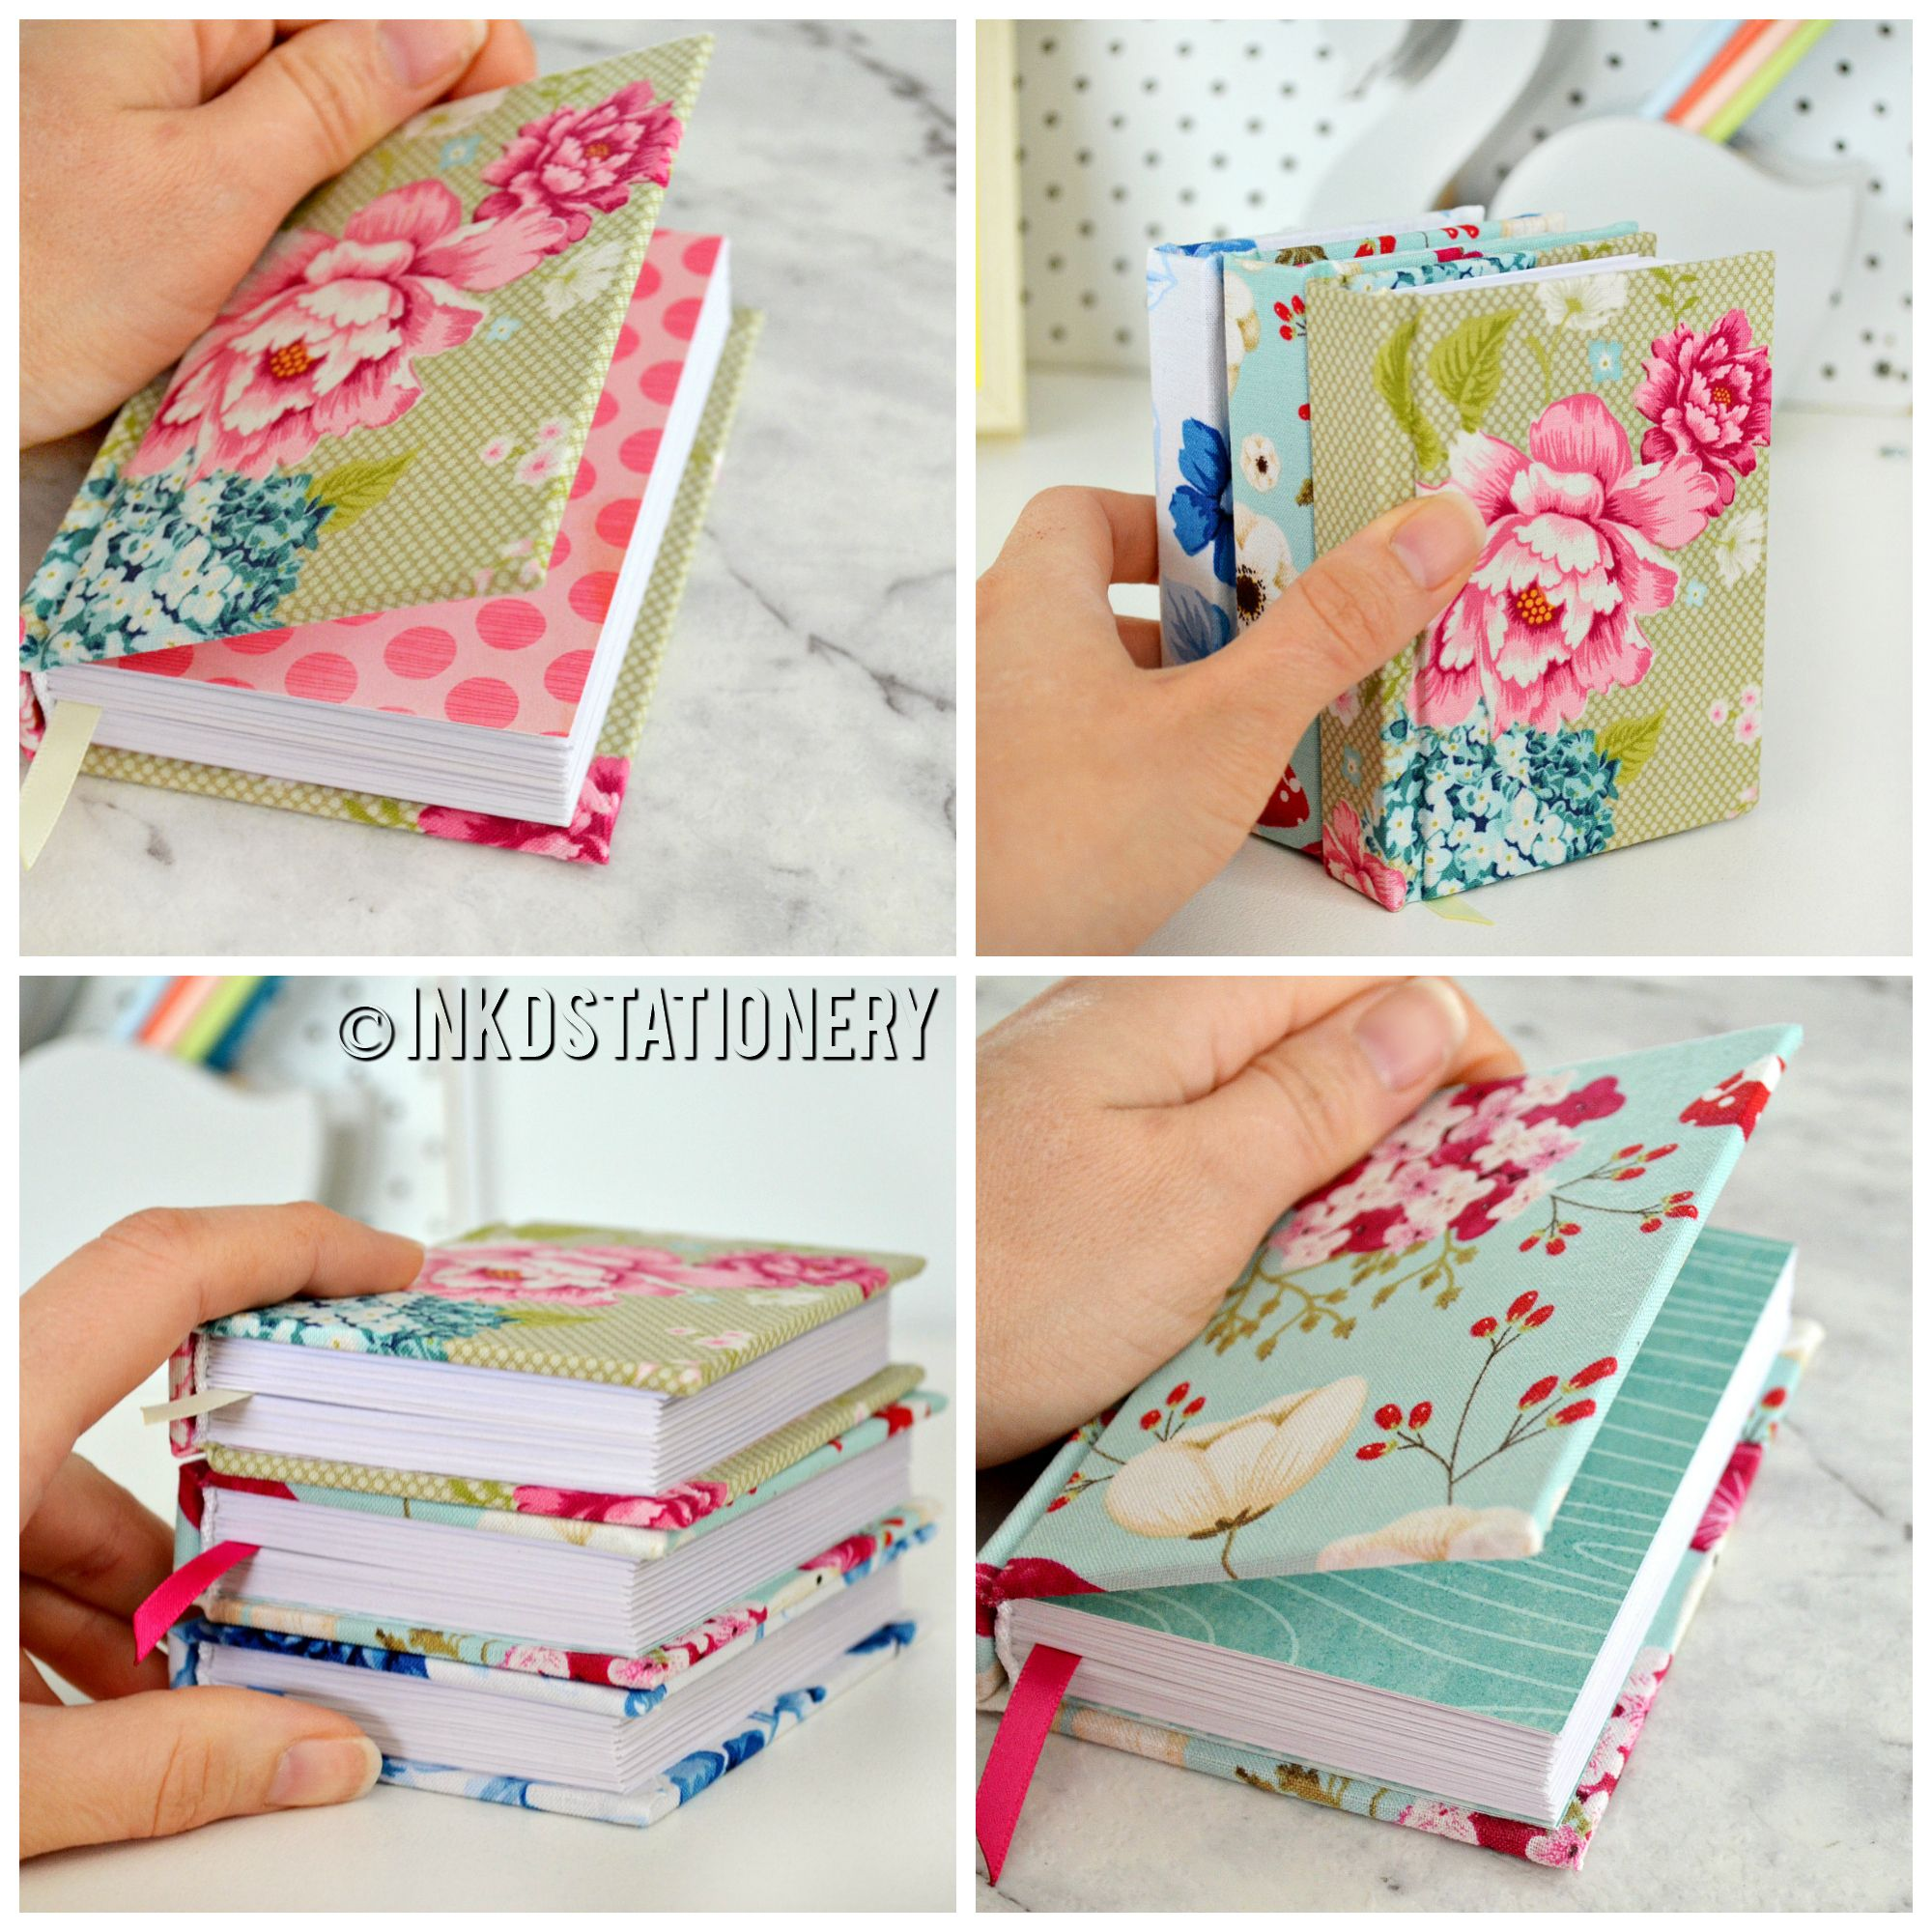 Hand-bound Mini Journals. Made By INKDStationery Using